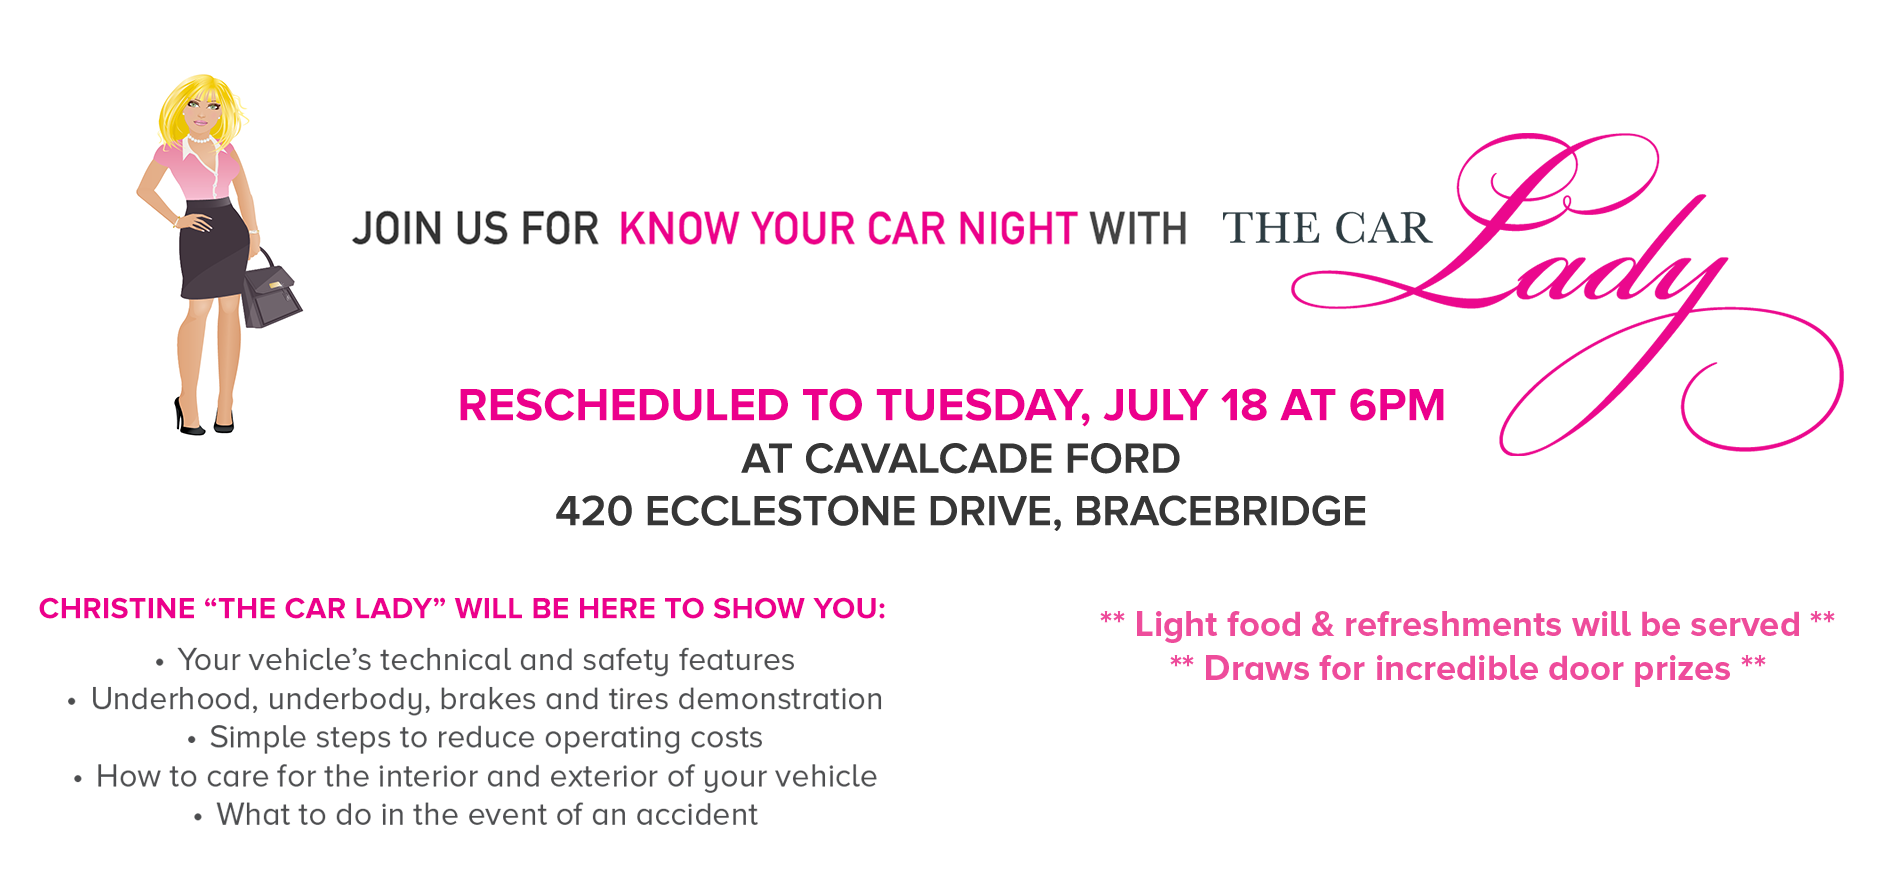 Know Your Car Night - RESCHEUDLED